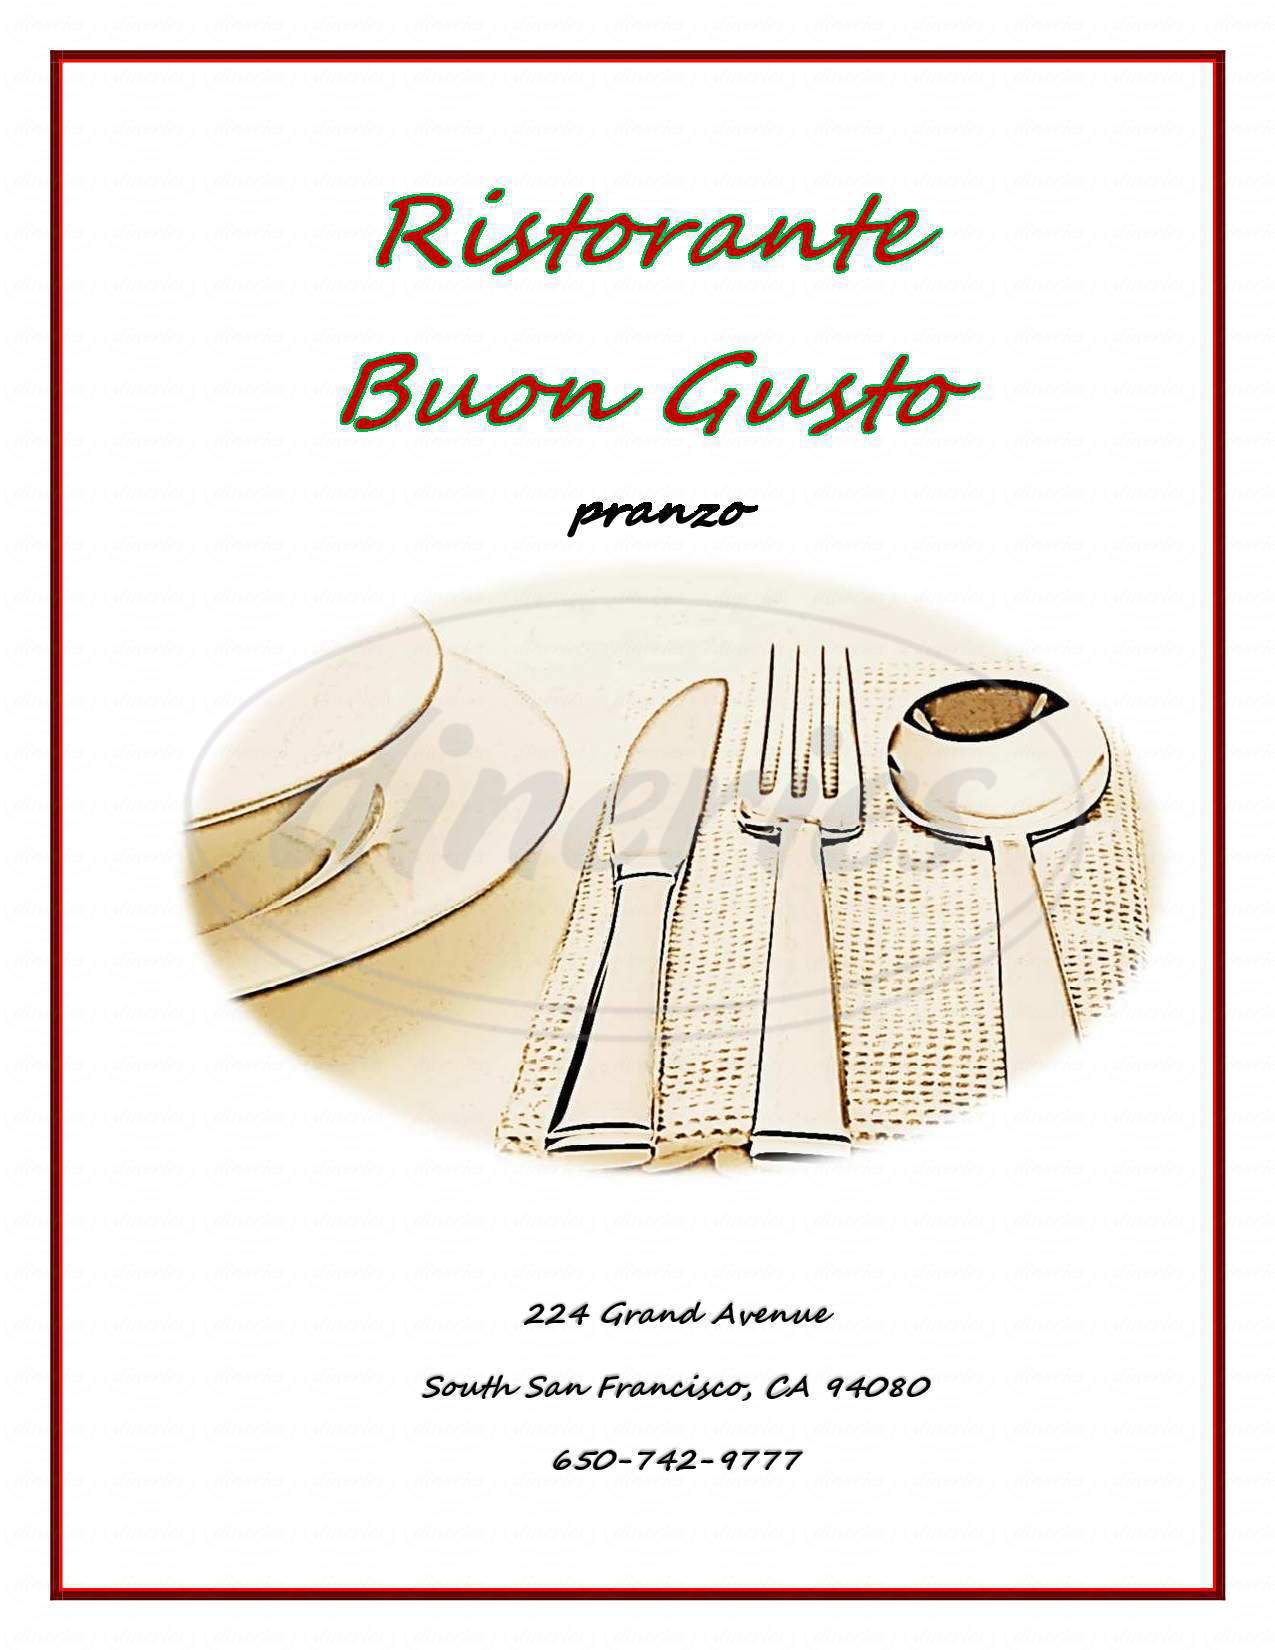 menu for Buon Gusto